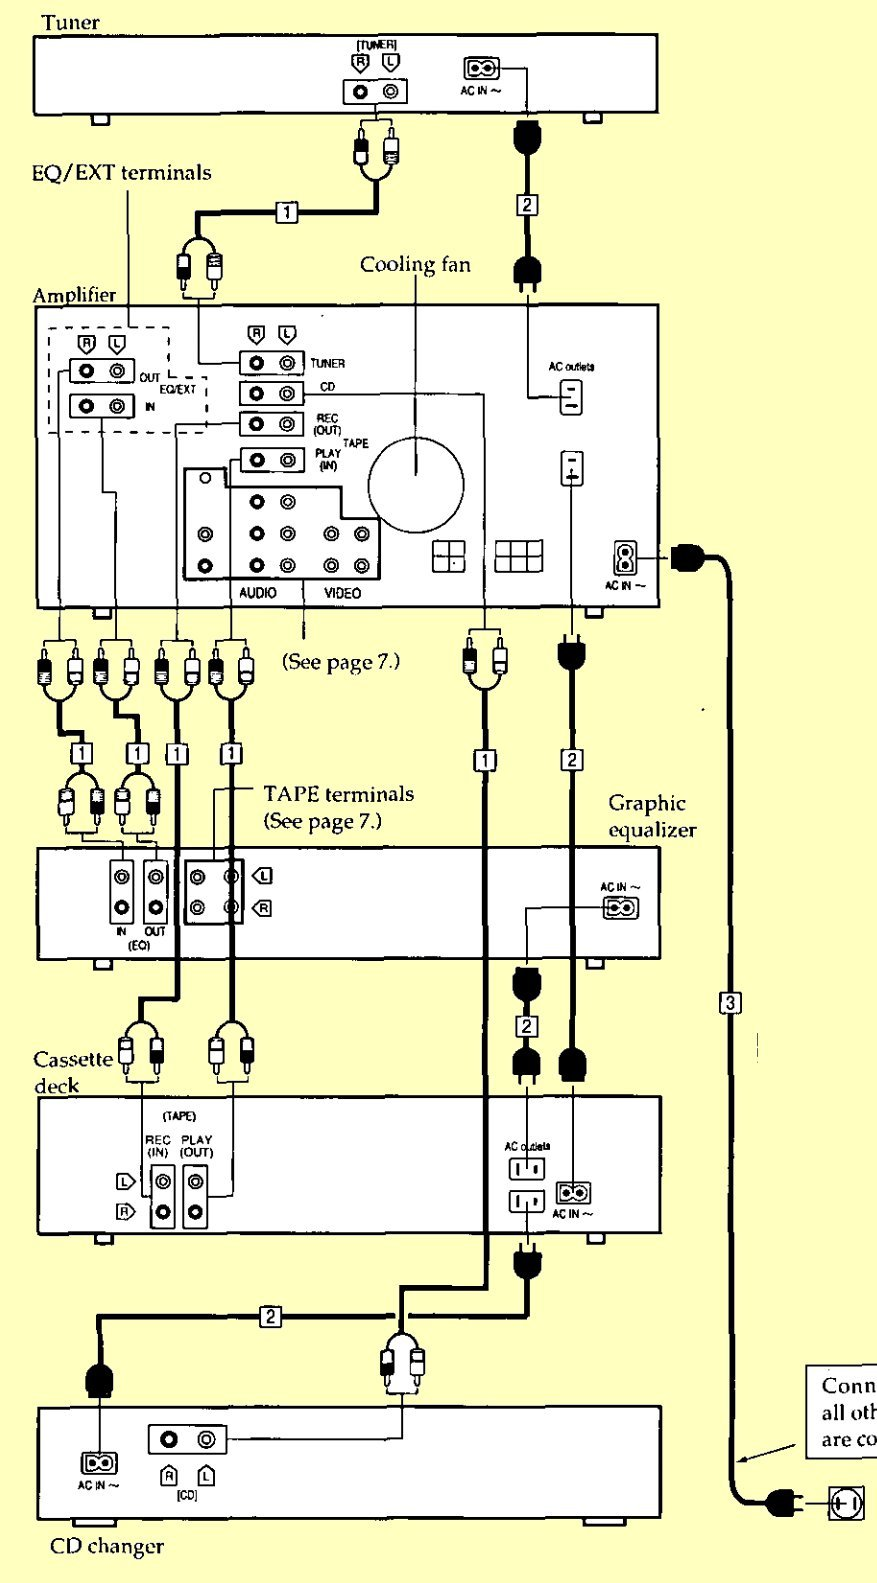 technics home stereo wiring diagram 19 27 kenmo lp de \u2022technics home stereo wiring diagram